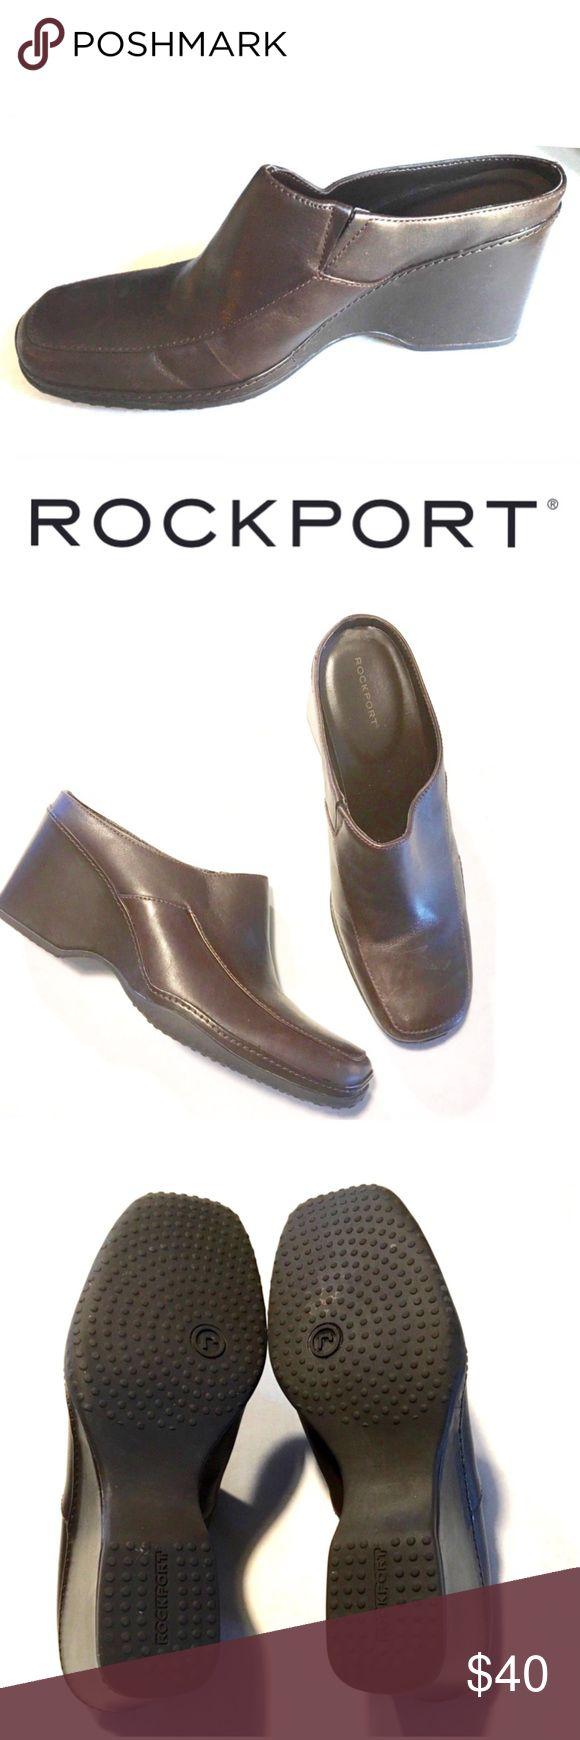 "Rockport Mule Clog Brown Slip on (NIB) New in Box  ROCKPORT BRAND  Mule / Clog Shoes Women Size 7 1/2 Brown Leather (Colors may vary from screen to screen depending on the type of light.) Heel is 2-3/4"" height Has the look of BOOTS when they are on GORGEOUS SHOES!!!!  Thanks for looking! Rockport Shoes Mules & Clogs #Mules&Clogs"